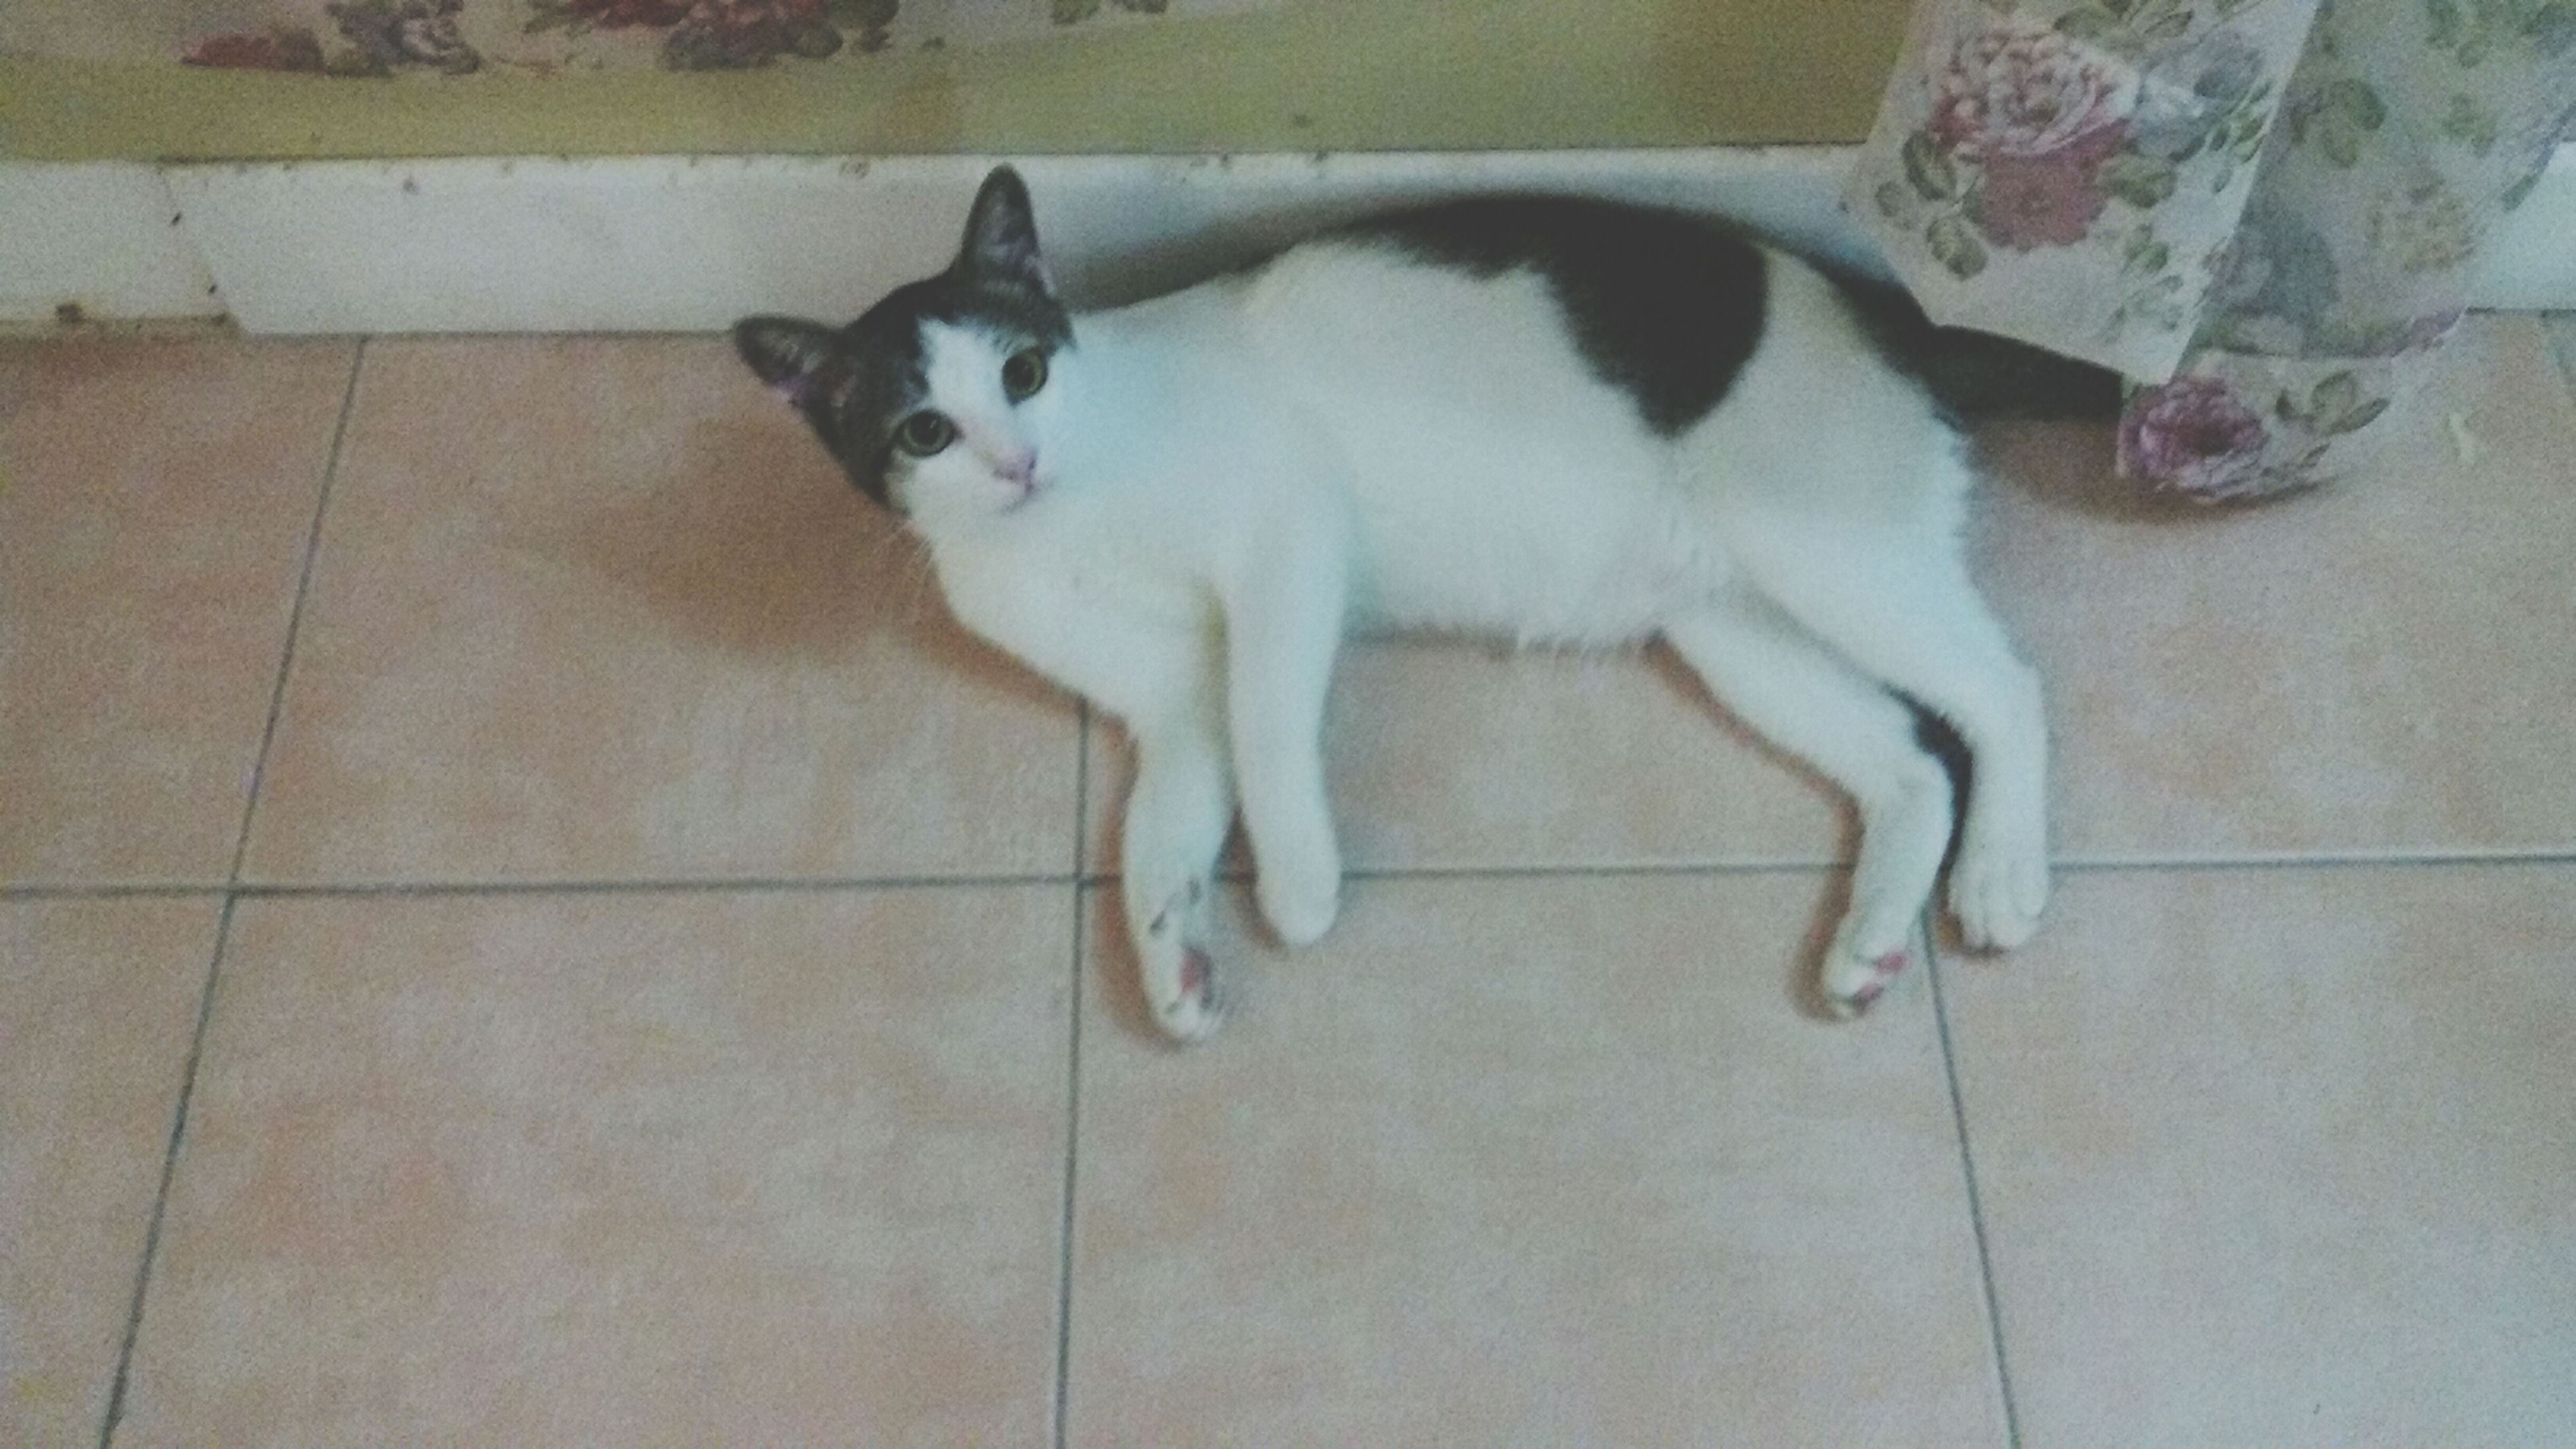 domestic animals, pets, animal themes, mammal, one animal, domestic cat, cat, indoors, high angle view, feline, relaxation, tiled floor, flooring, full length, lying down, dog, white color, resting, no people, sitting